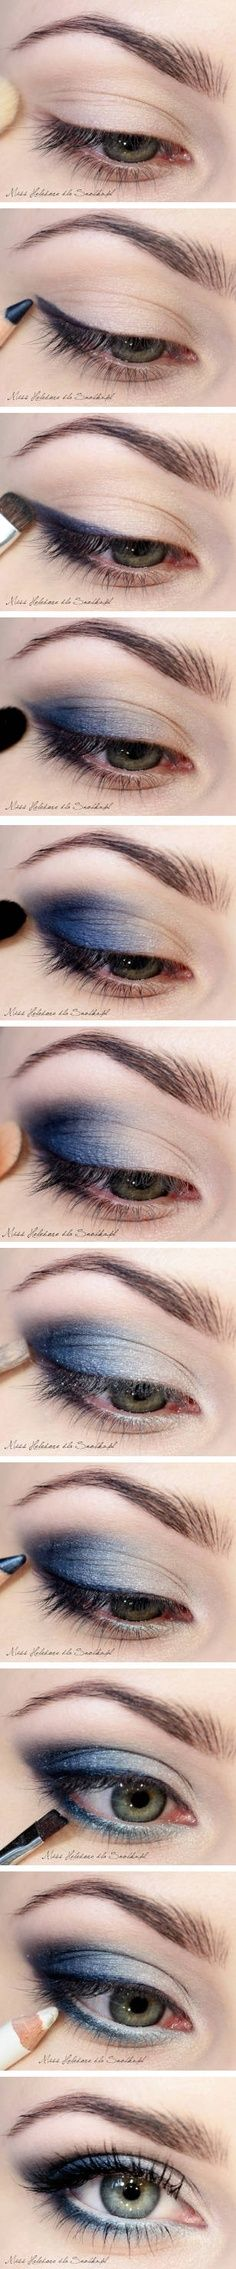 great and easy eye looks and makeup artist tricks! the best beauty tips and tricks!